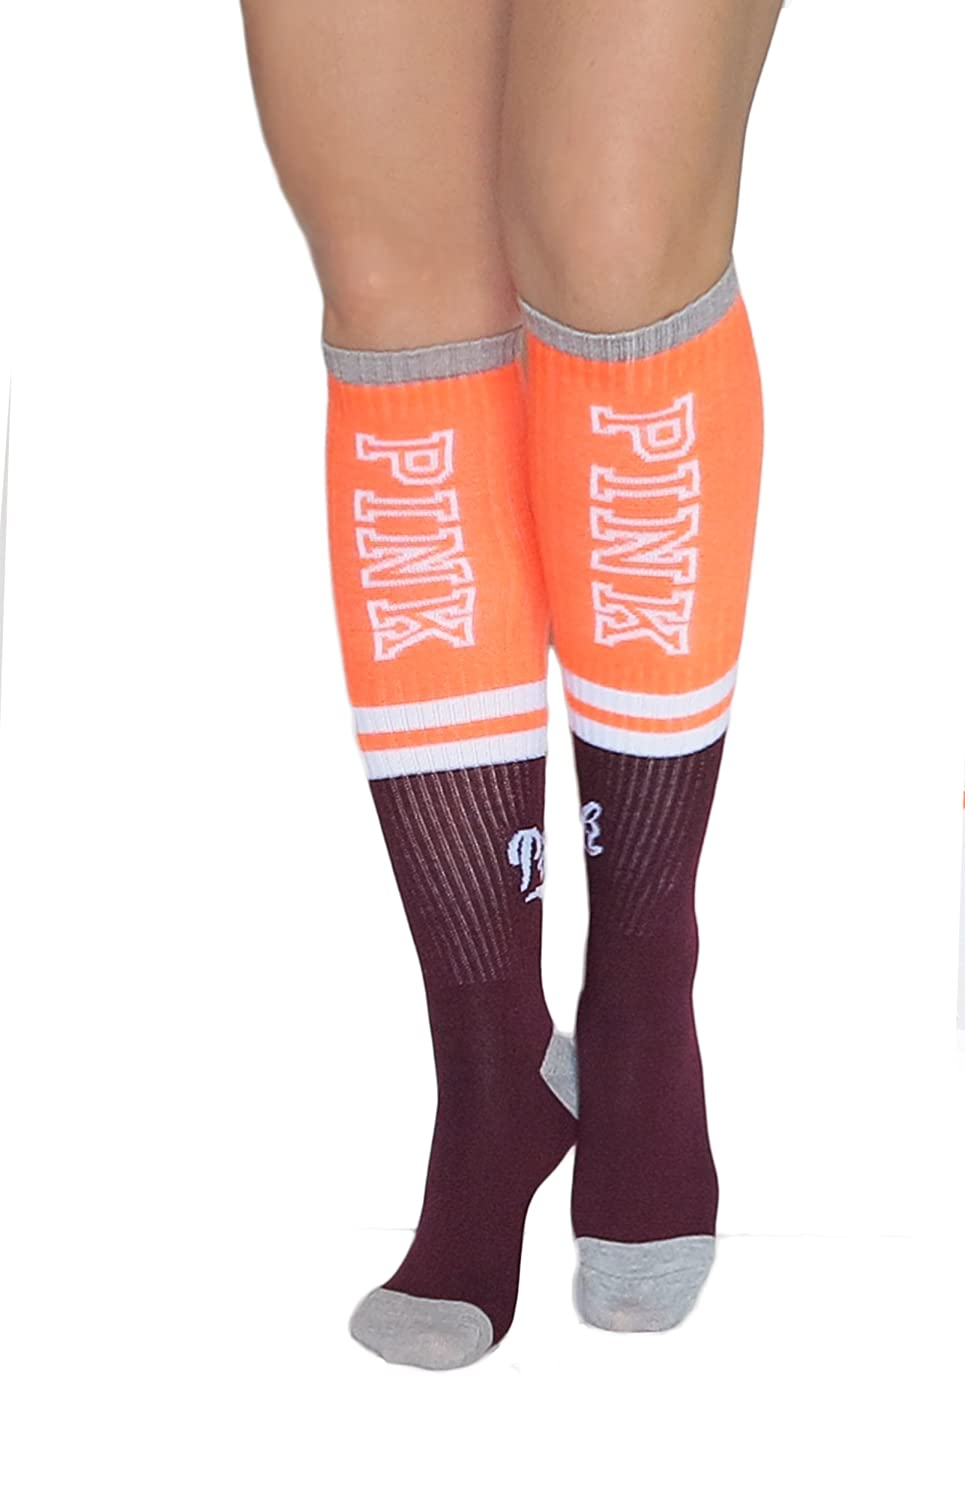 275a01c5e83 Victoria s Secret PINK! Knee High Socks Pack of 2 .Blue Marled  Patriot at  Amazon Women s Clothing store